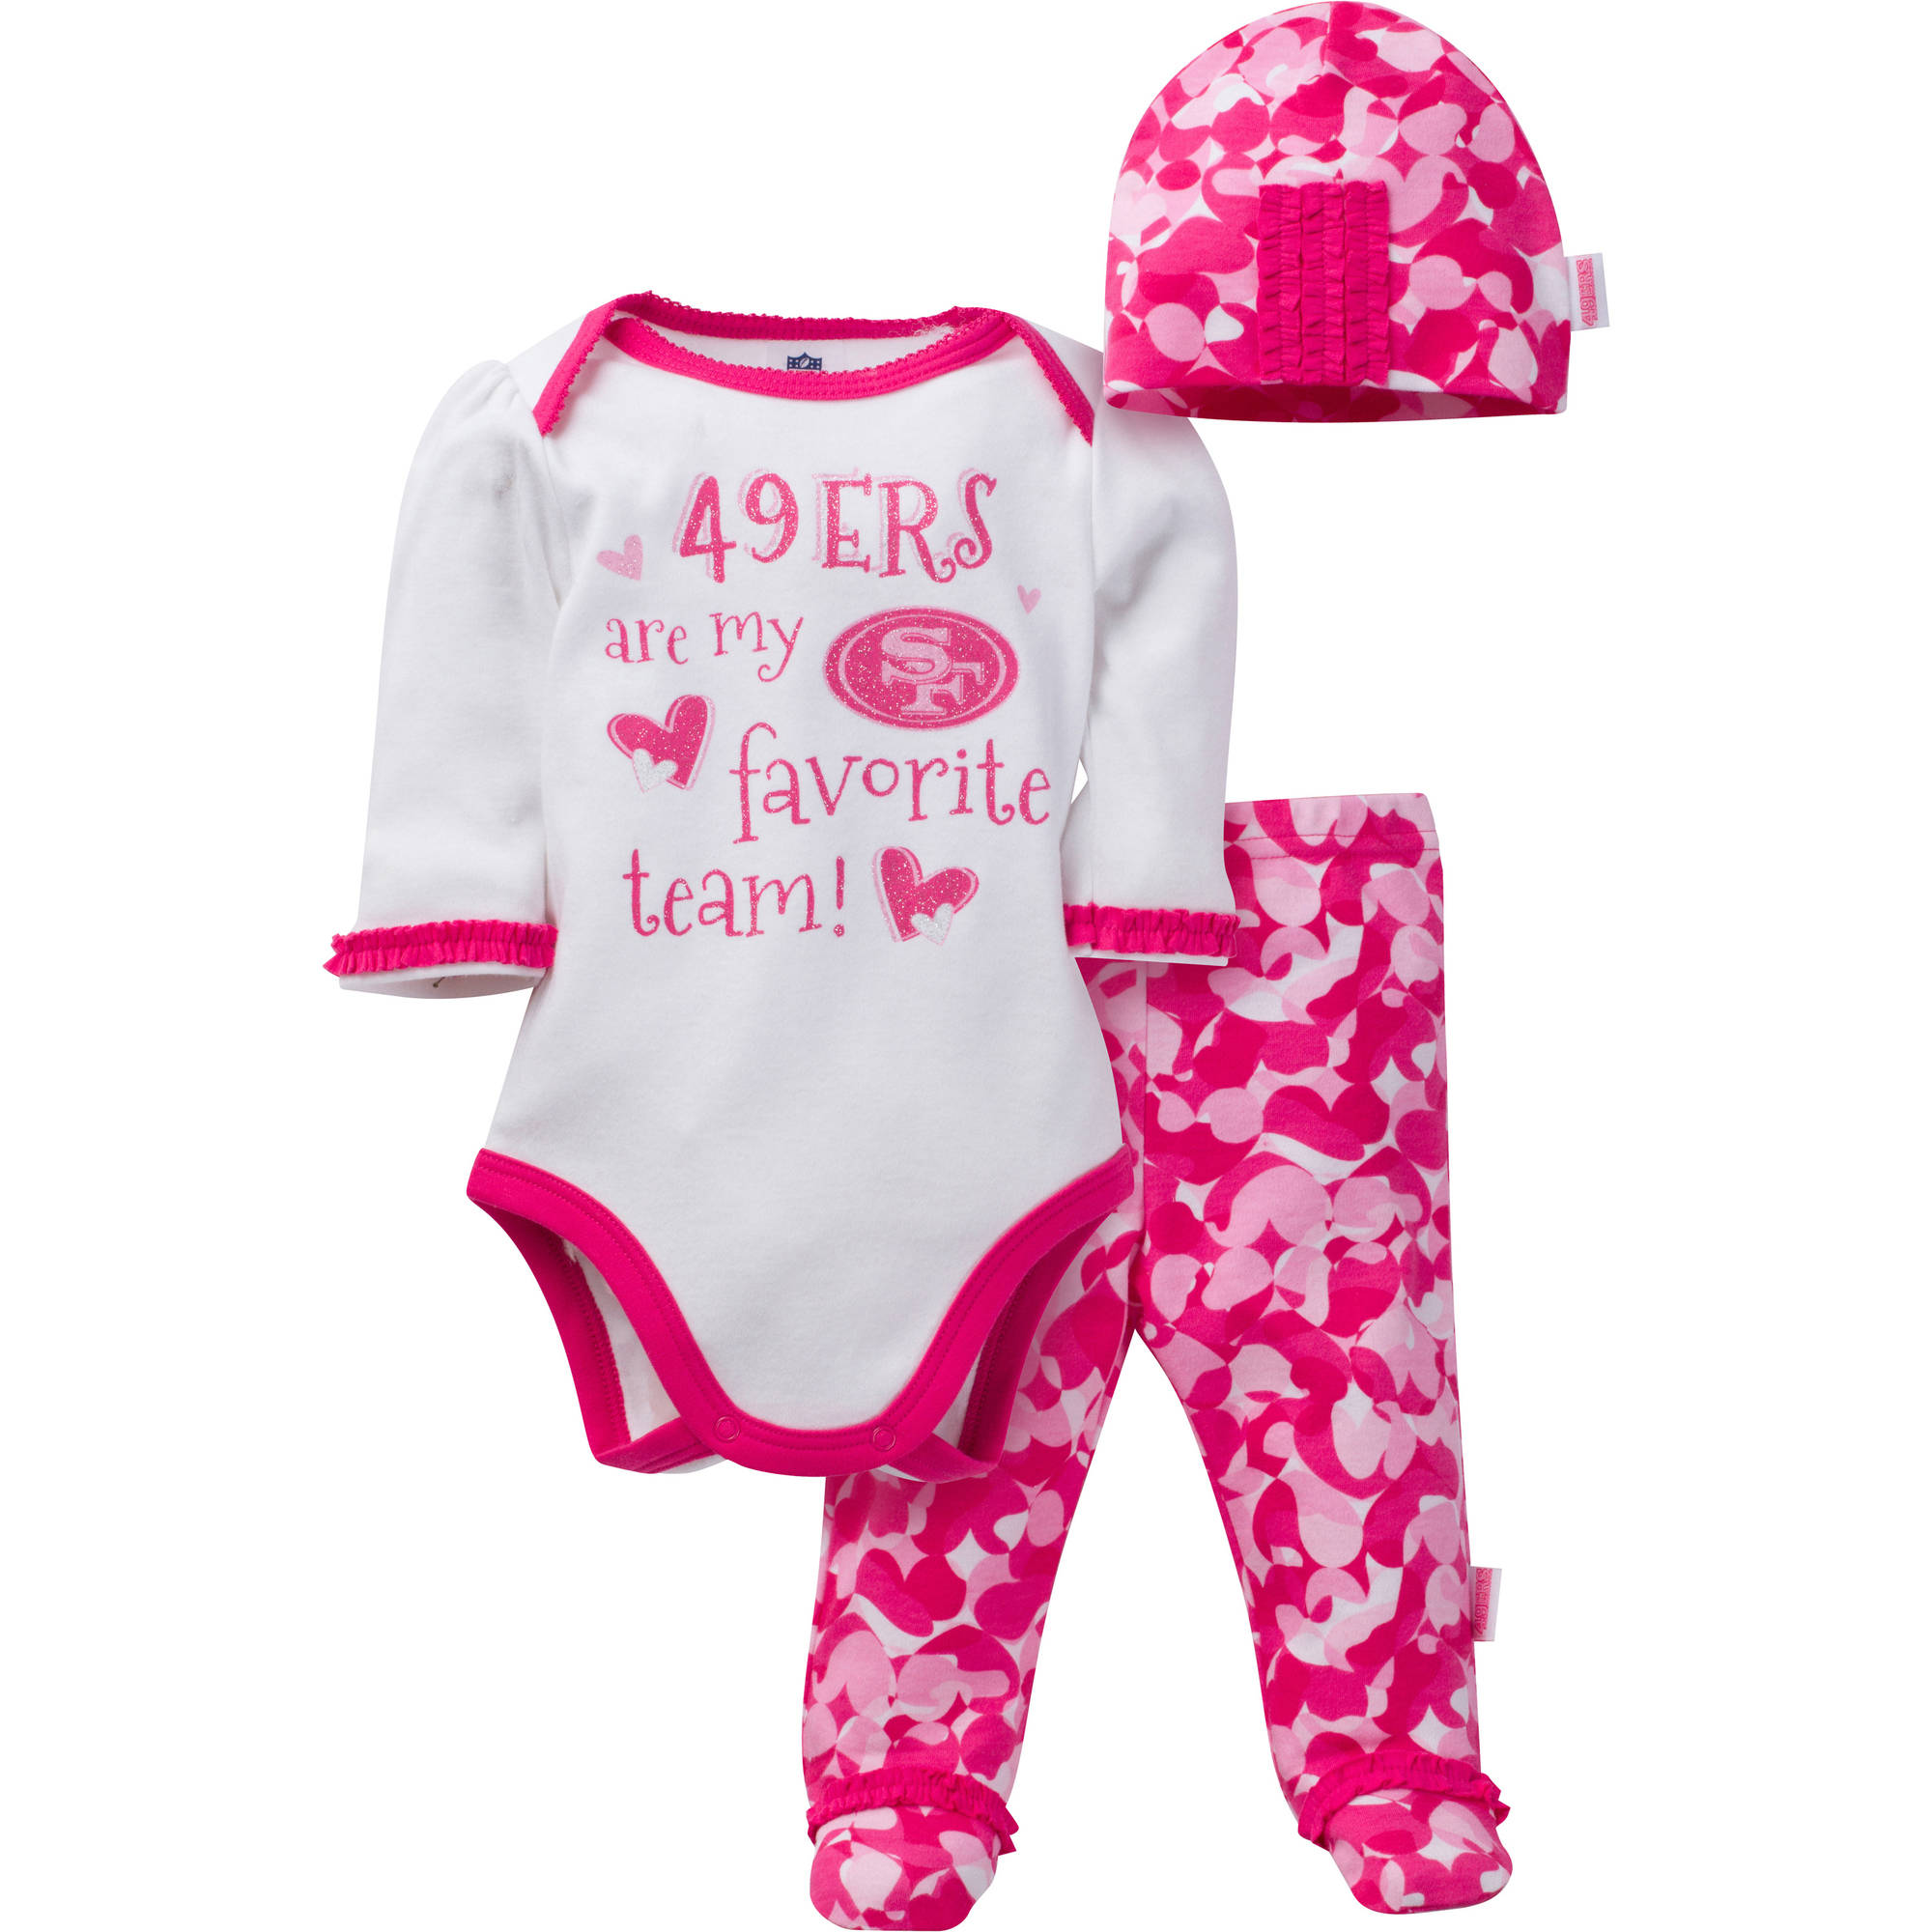 NFL San Francisco 49ers Baby Girls Bodysuit, Pant and Cap Outfit Set, 3-Piece